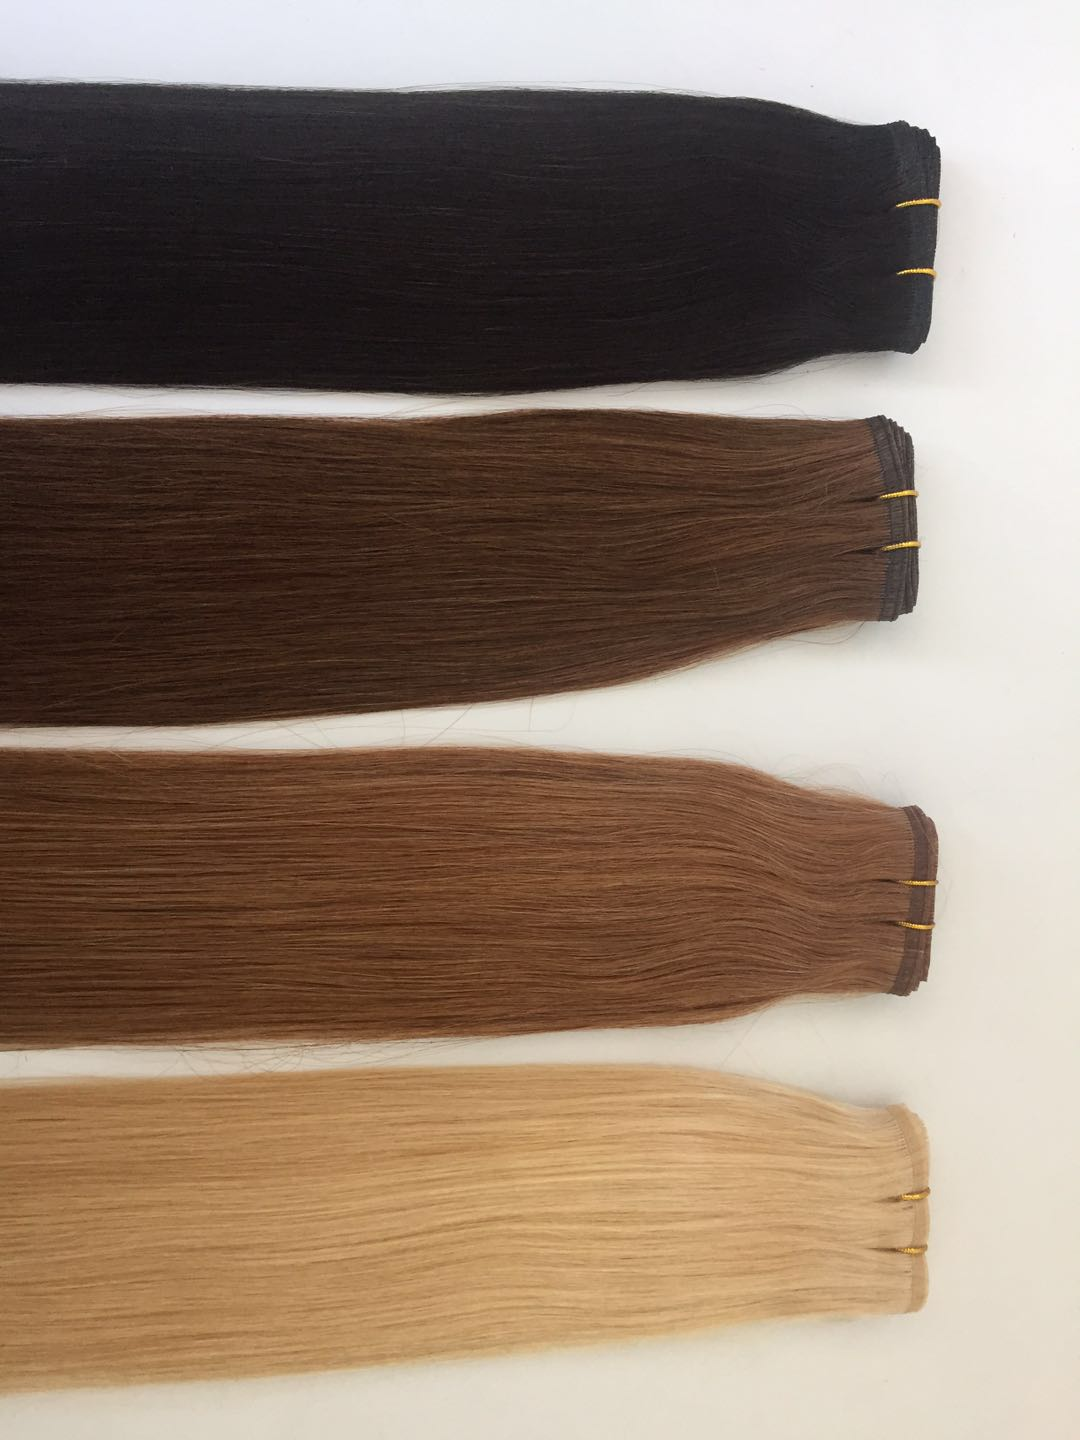 High Quality Tape In Human Hair Extensions Seamless Remy Human Hair Extensions Invisible lace hair extensions in stock QM190